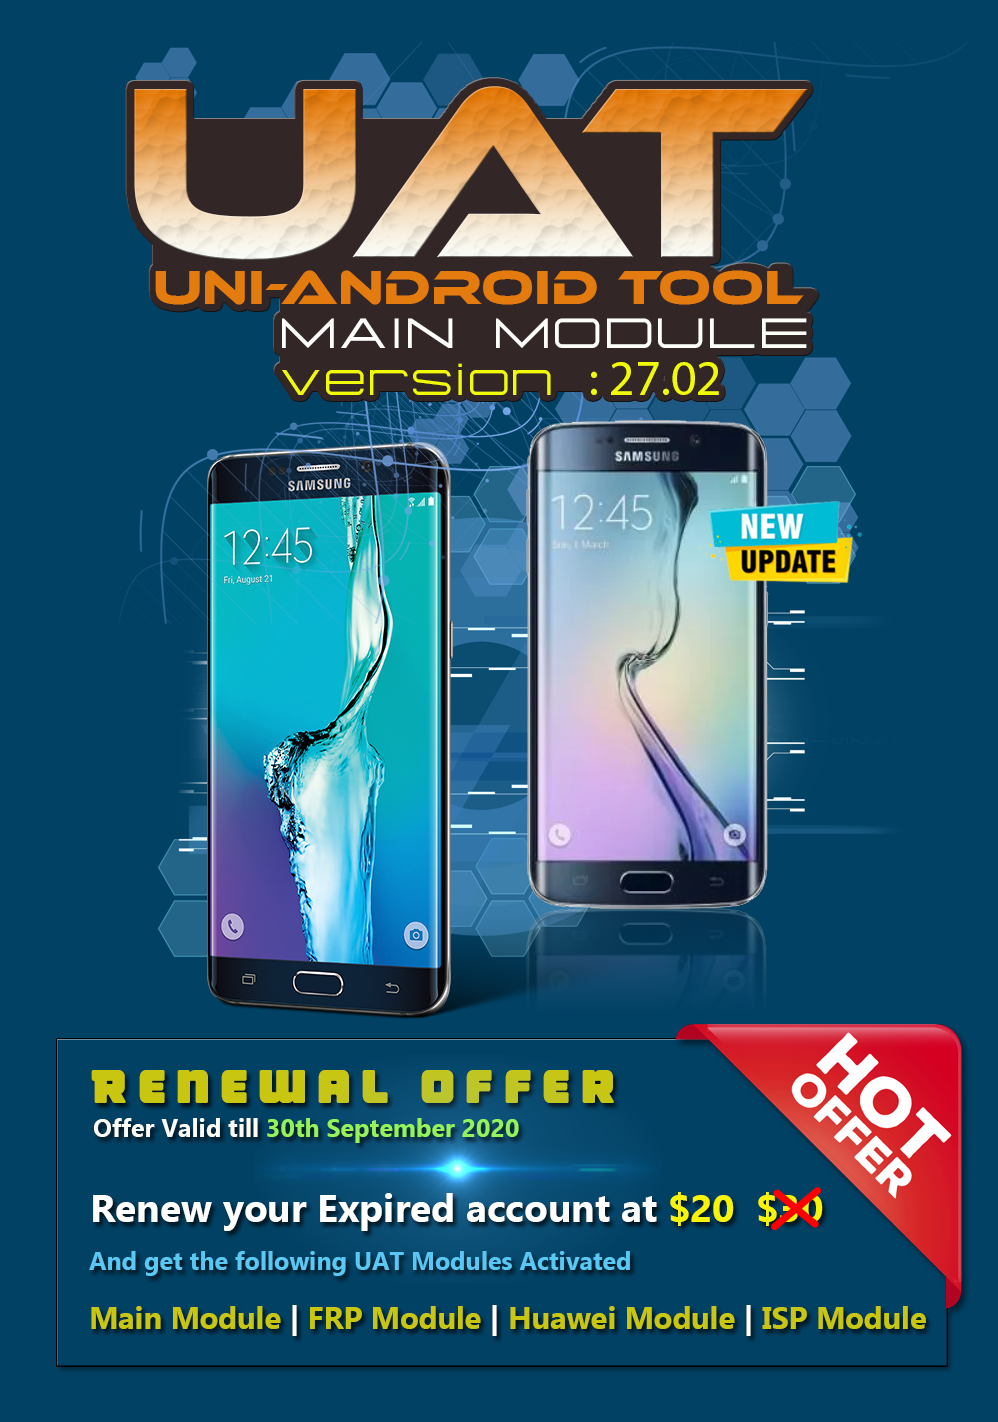 Uni-Android Tool [UAT] Version 27.02 [25.08.2020]